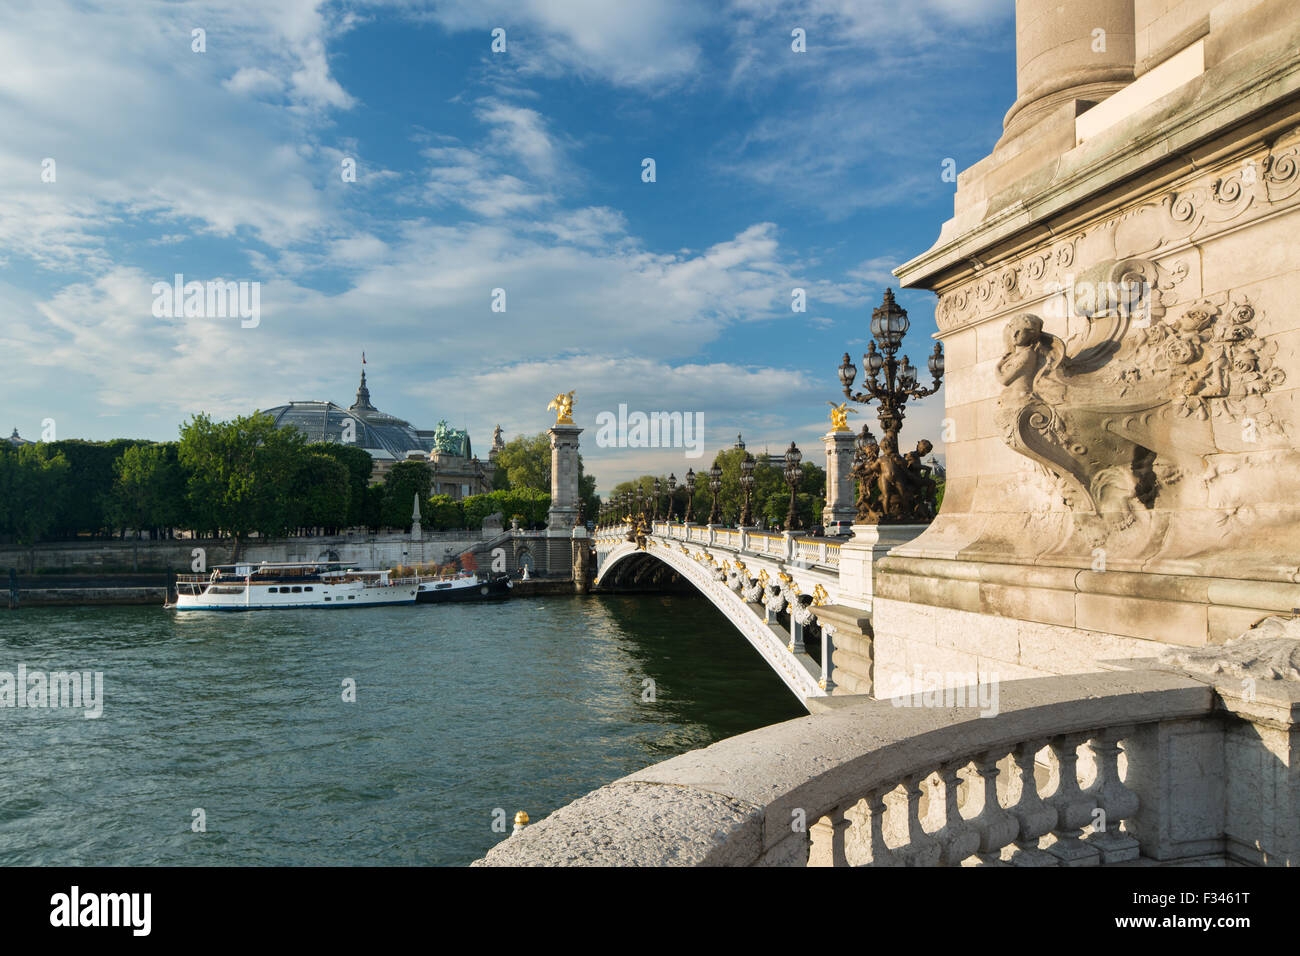 Le Pont Alexandre III, à la recherche vers le Grand Palais sur la Seine, Paris, France Photo Stock